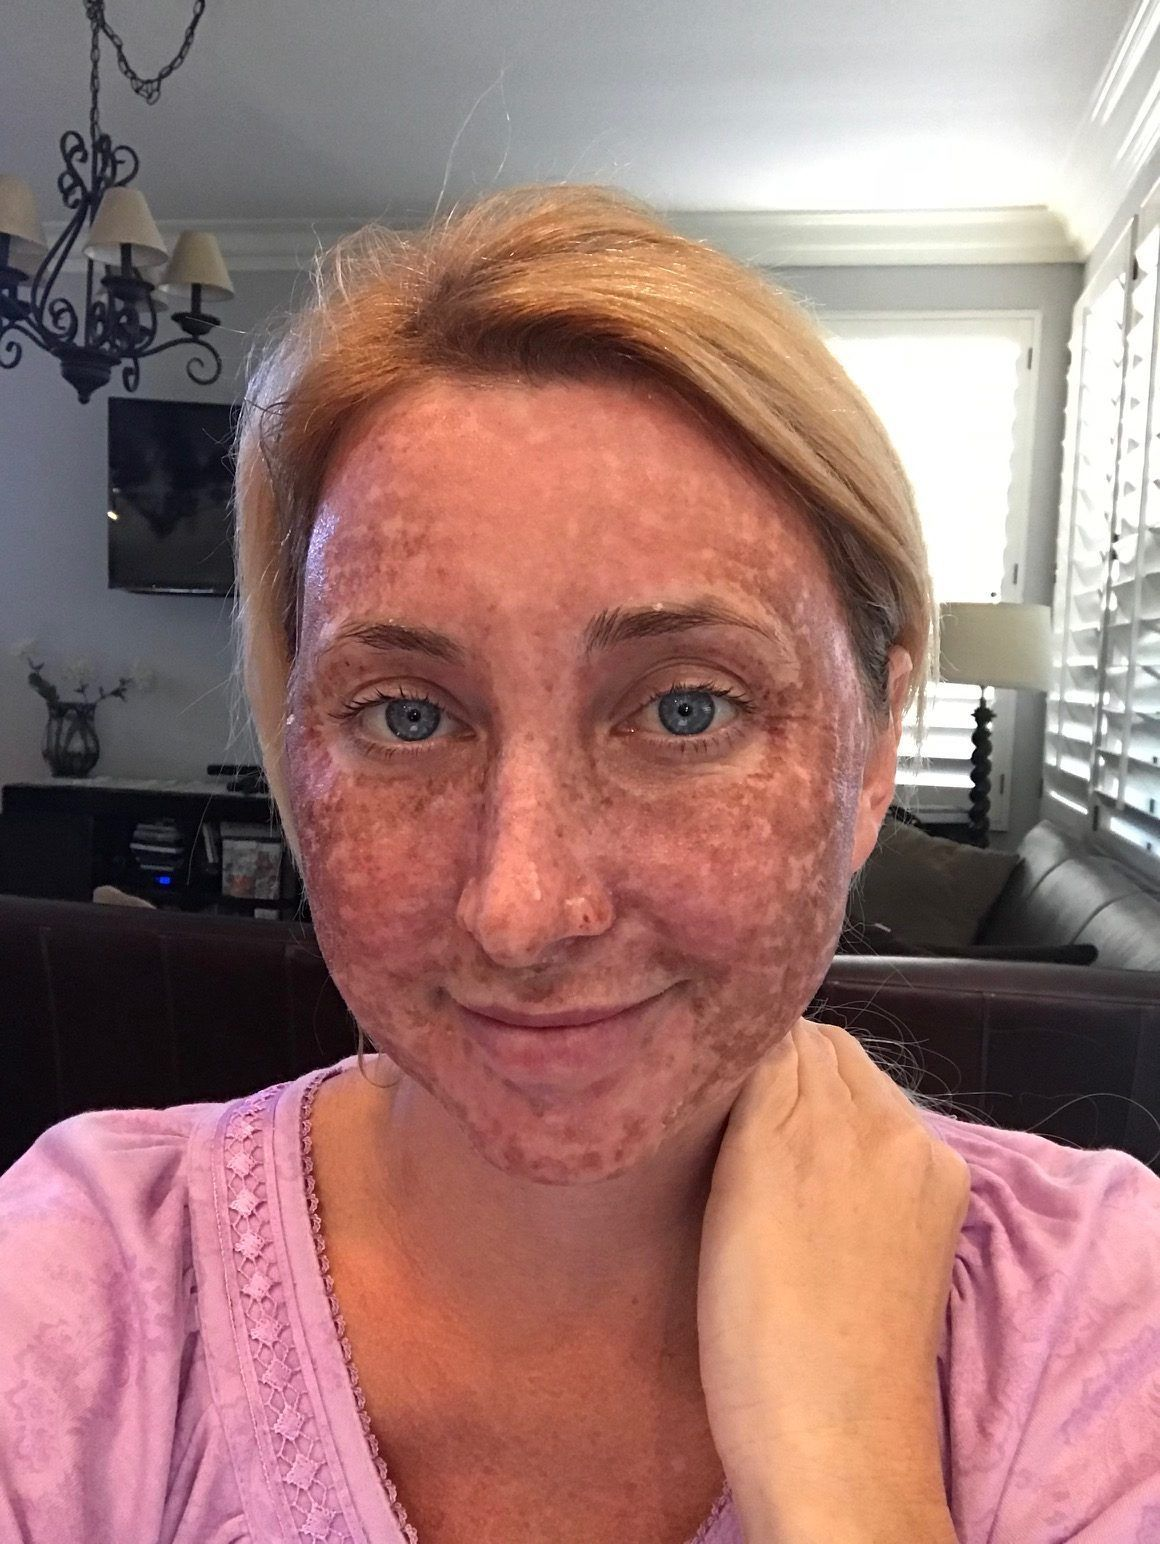 cosmeticare darkening after laser skin of at a